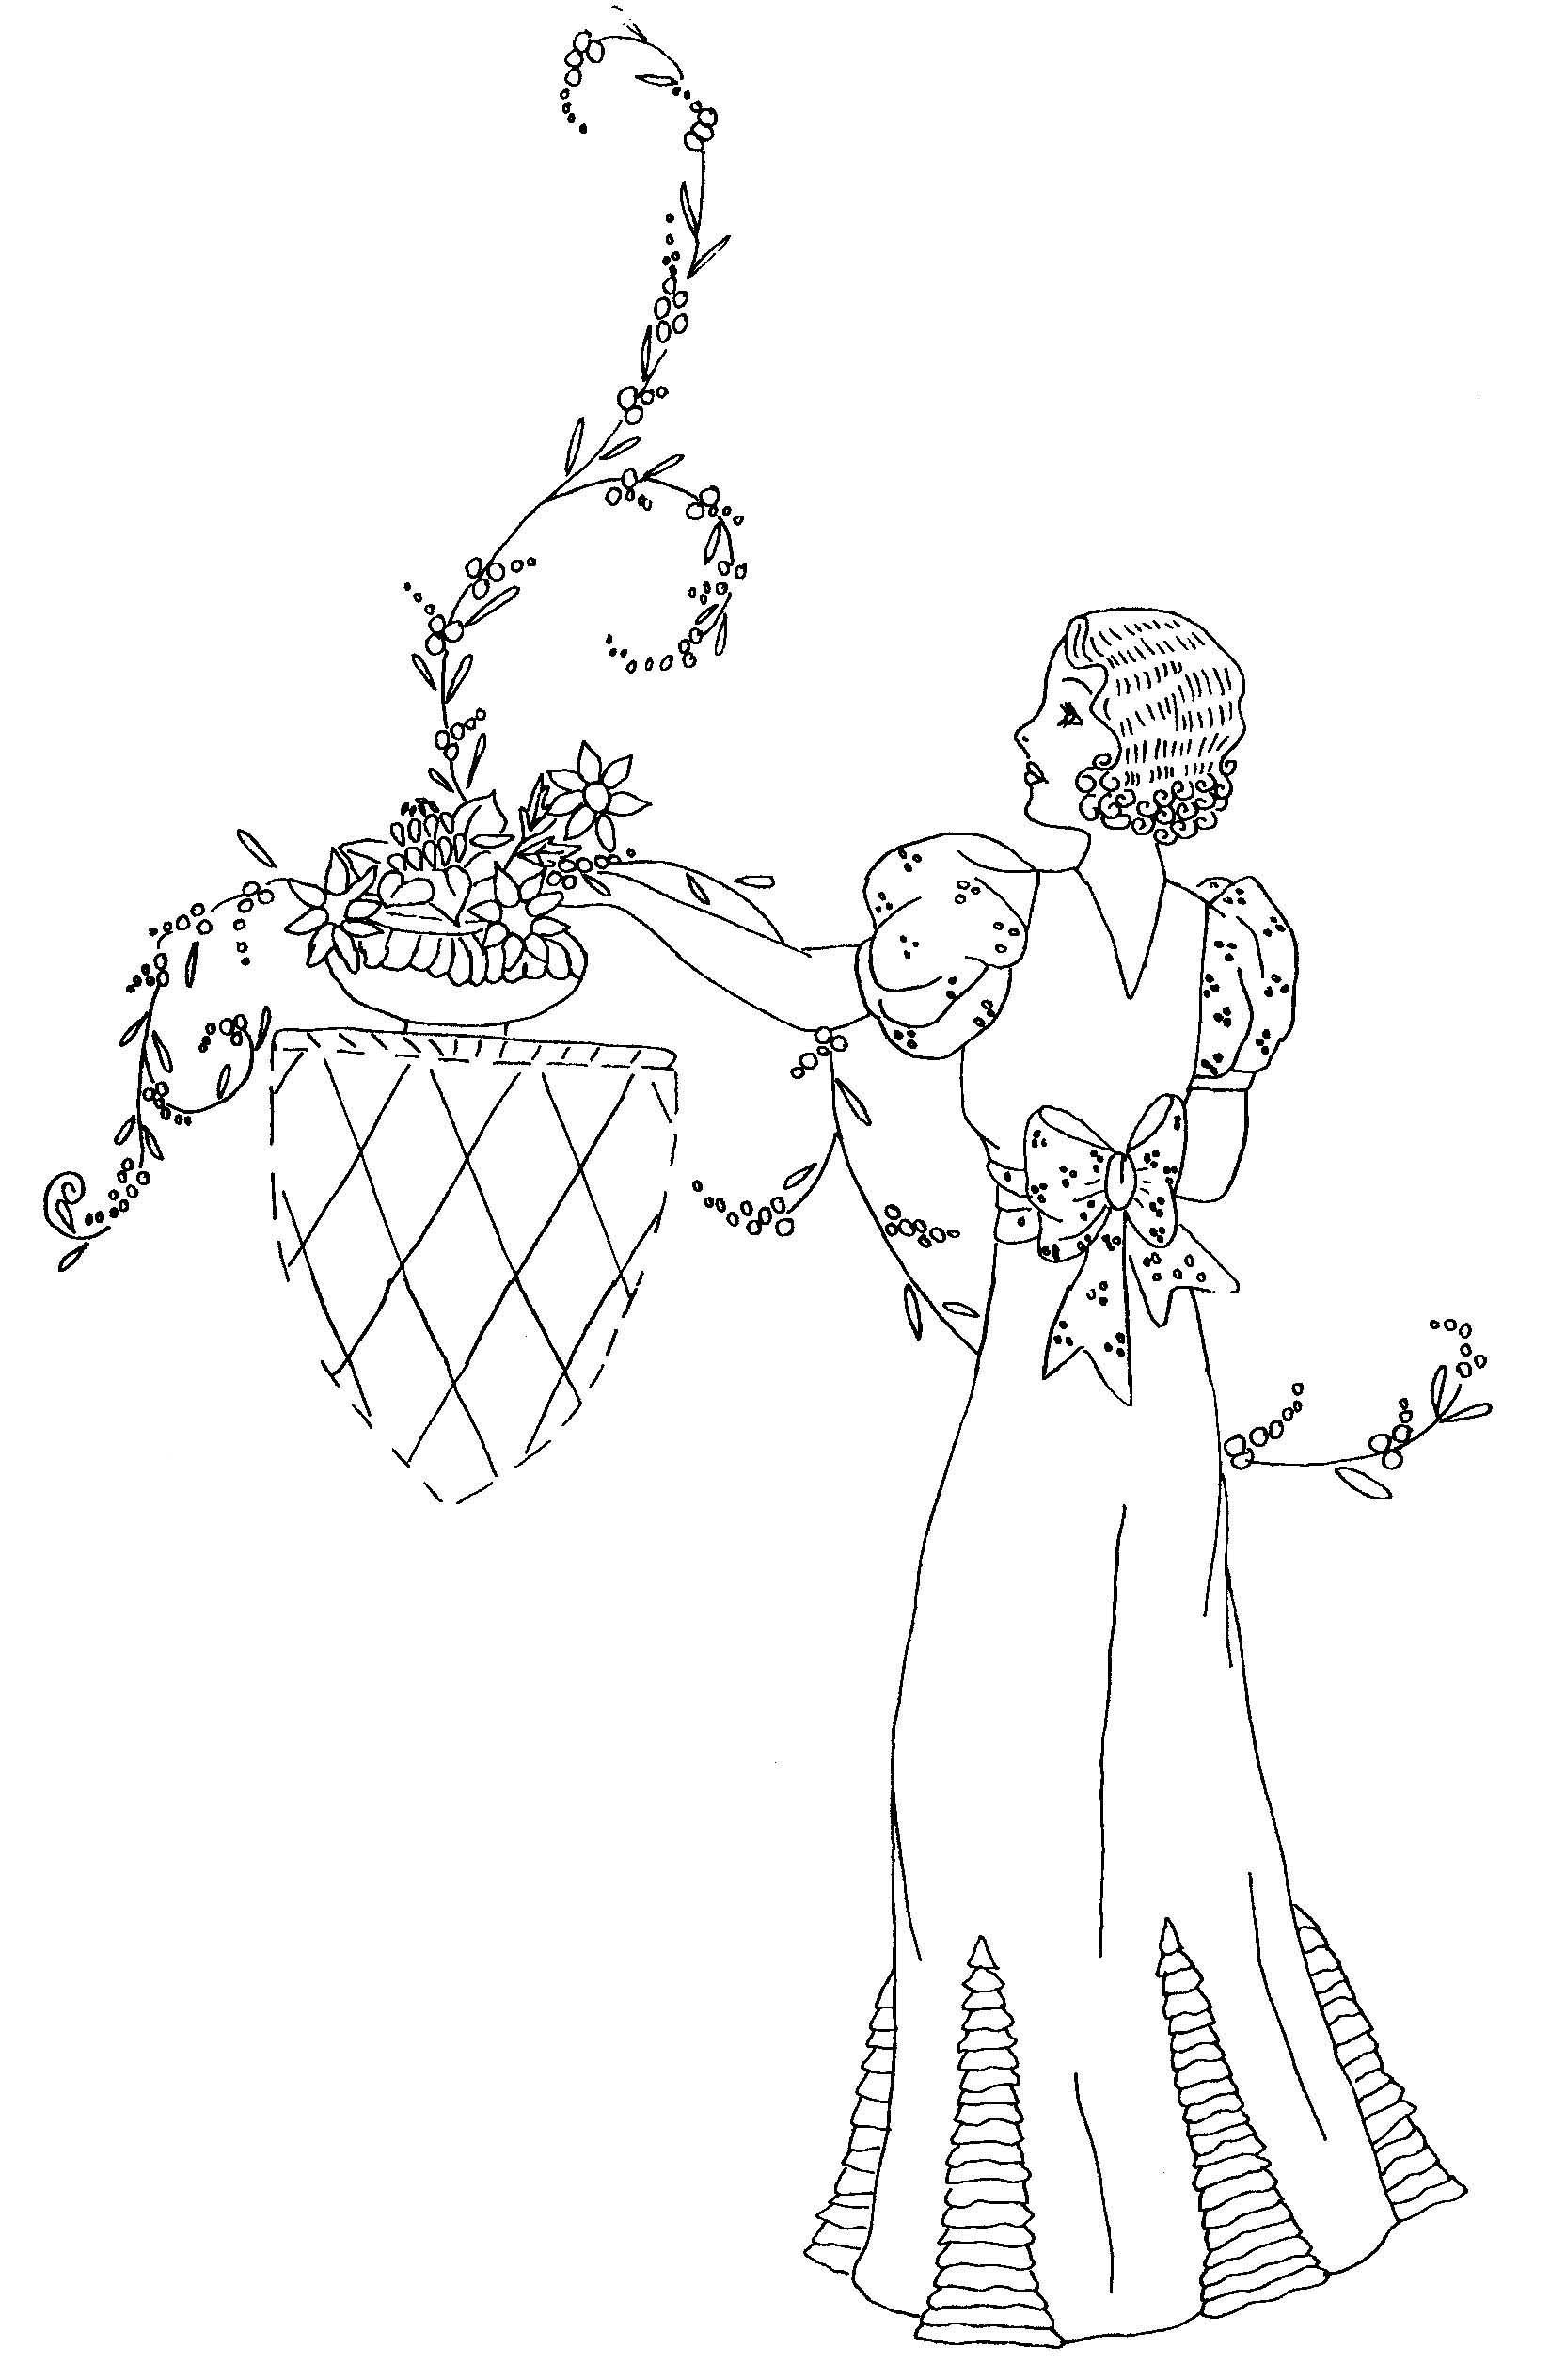 hand embroidery design from Ladies Tie One On - CD of hand ...